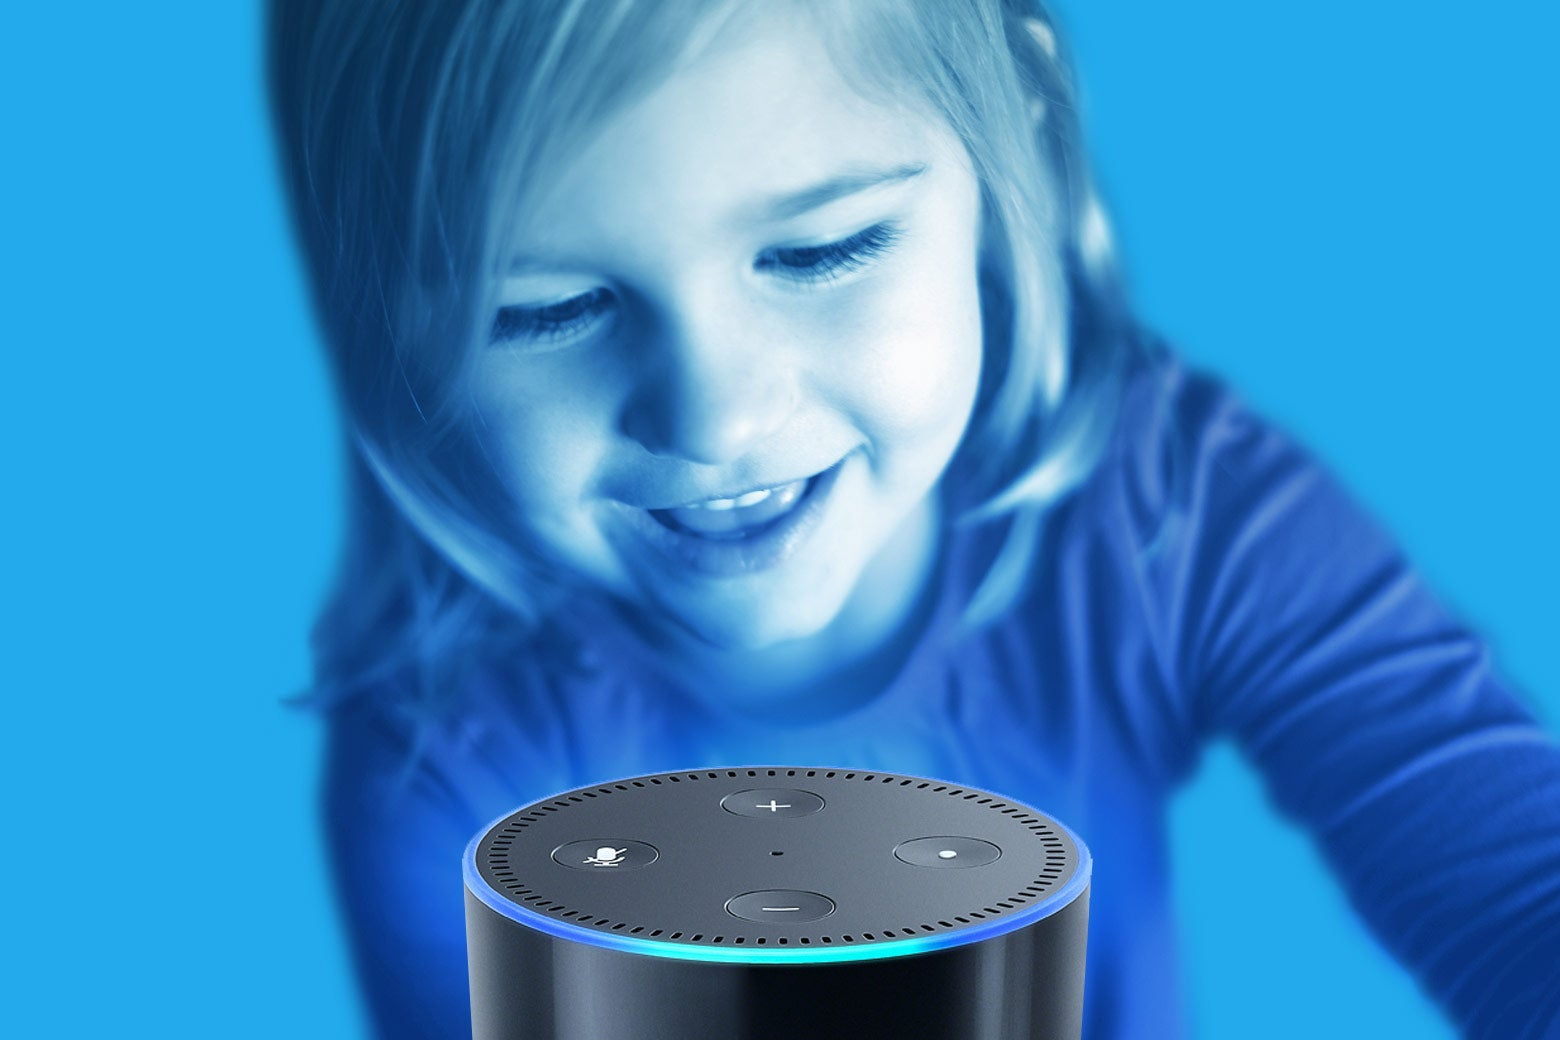 A child speaking to an Echo.